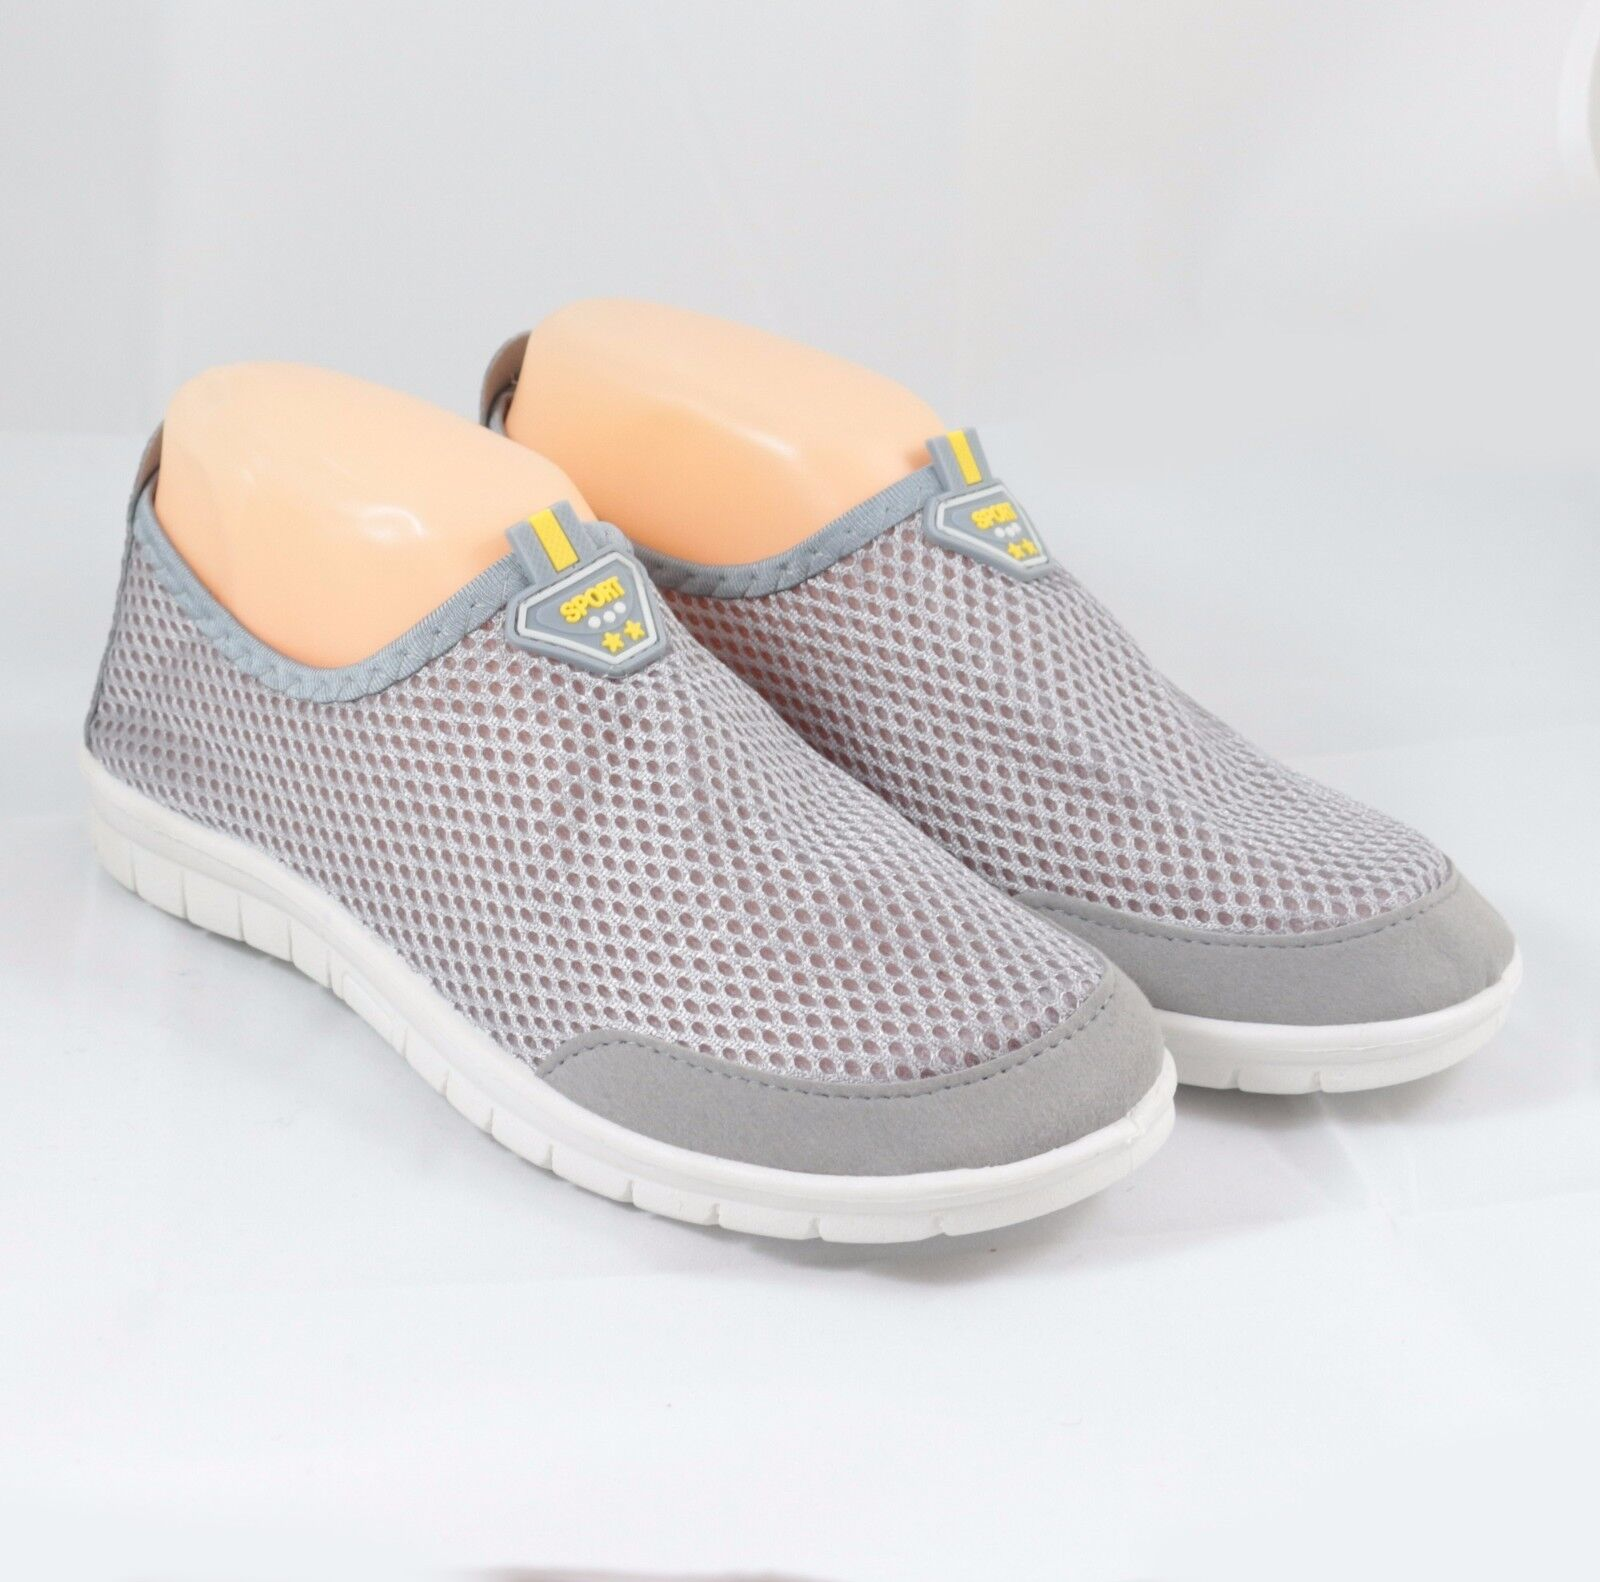 NWg Women's Athletic Gray Mesh Sneakers Running Athletic Women's Sports Casual Boost Shoes ab4596